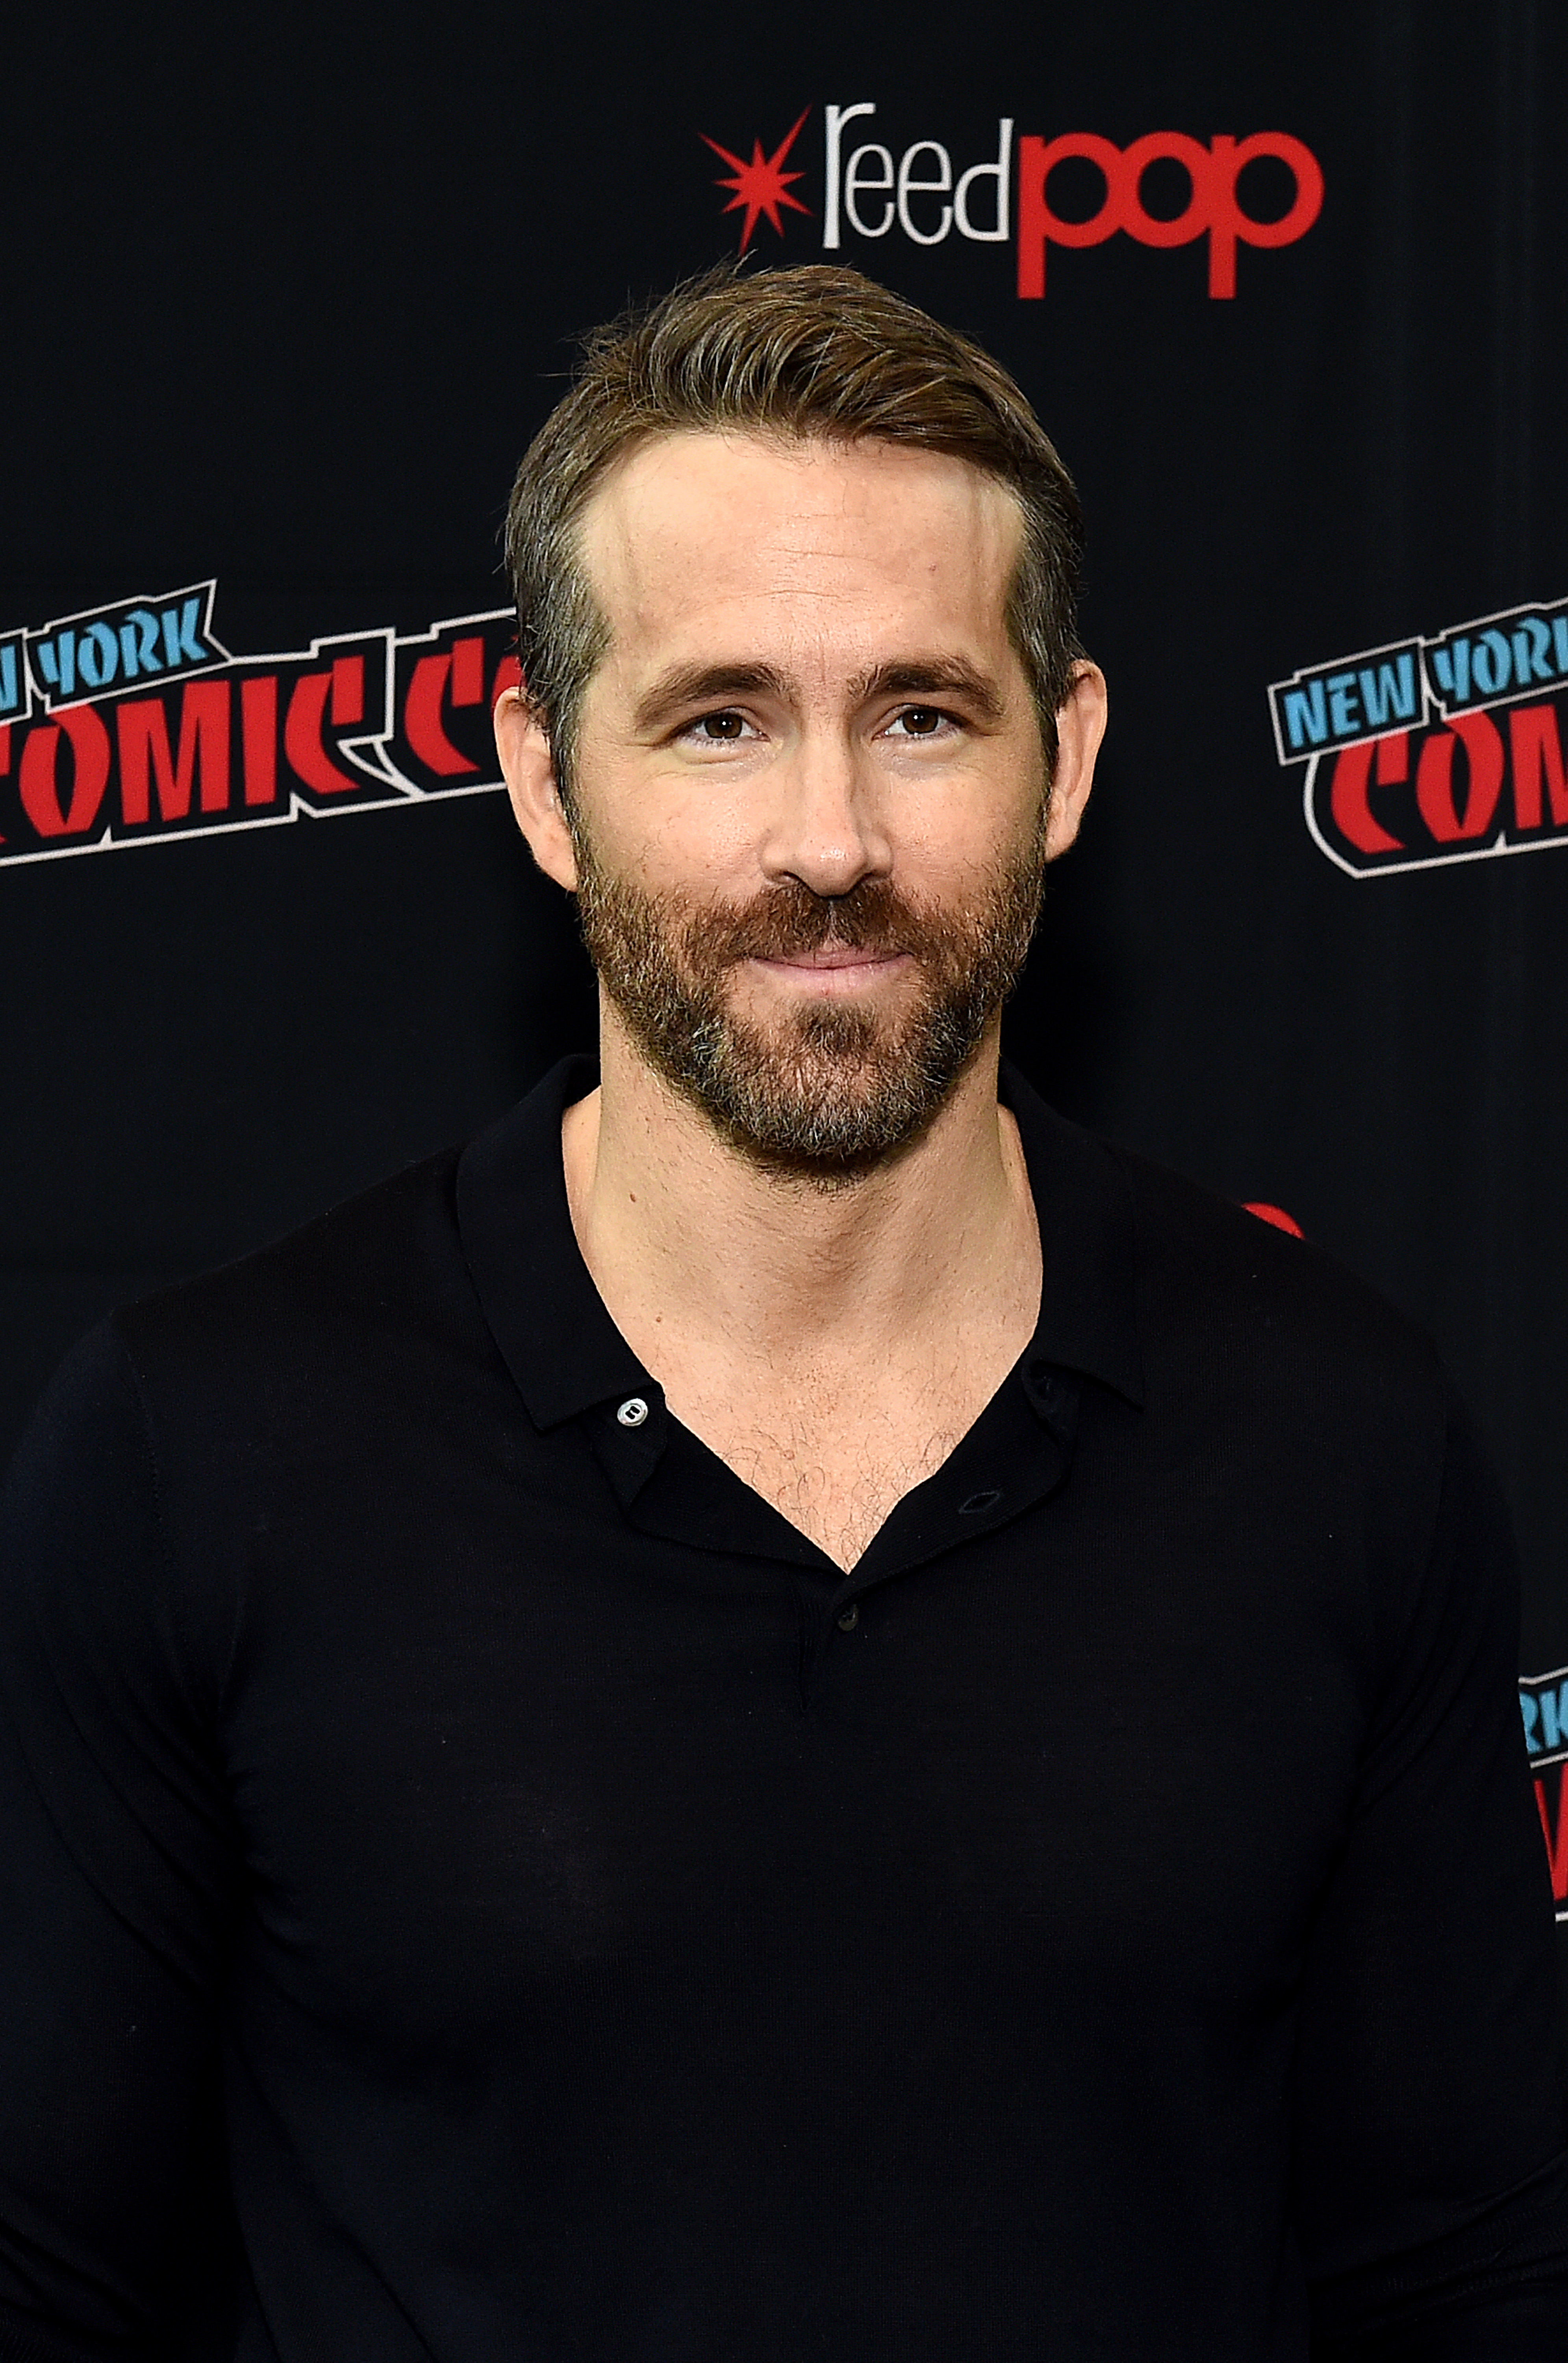 Ryan Reynolds at an event for Free Guy (2021)